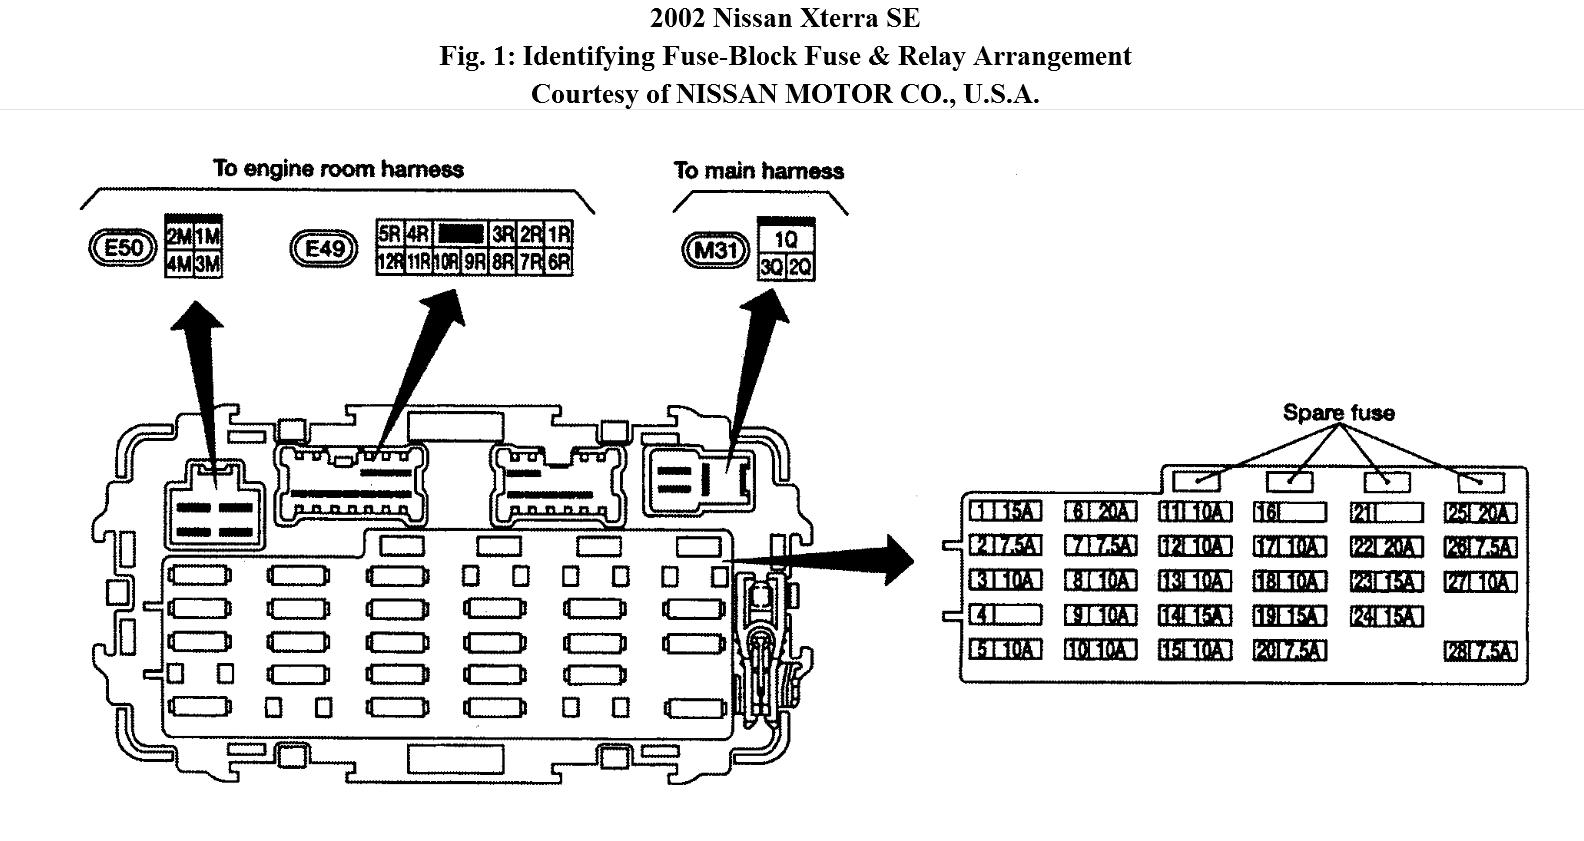 hight resolution of 2002 nissan frontier fuse box diagram wiring diagram operations2002 nissan frontier fuse box diagram